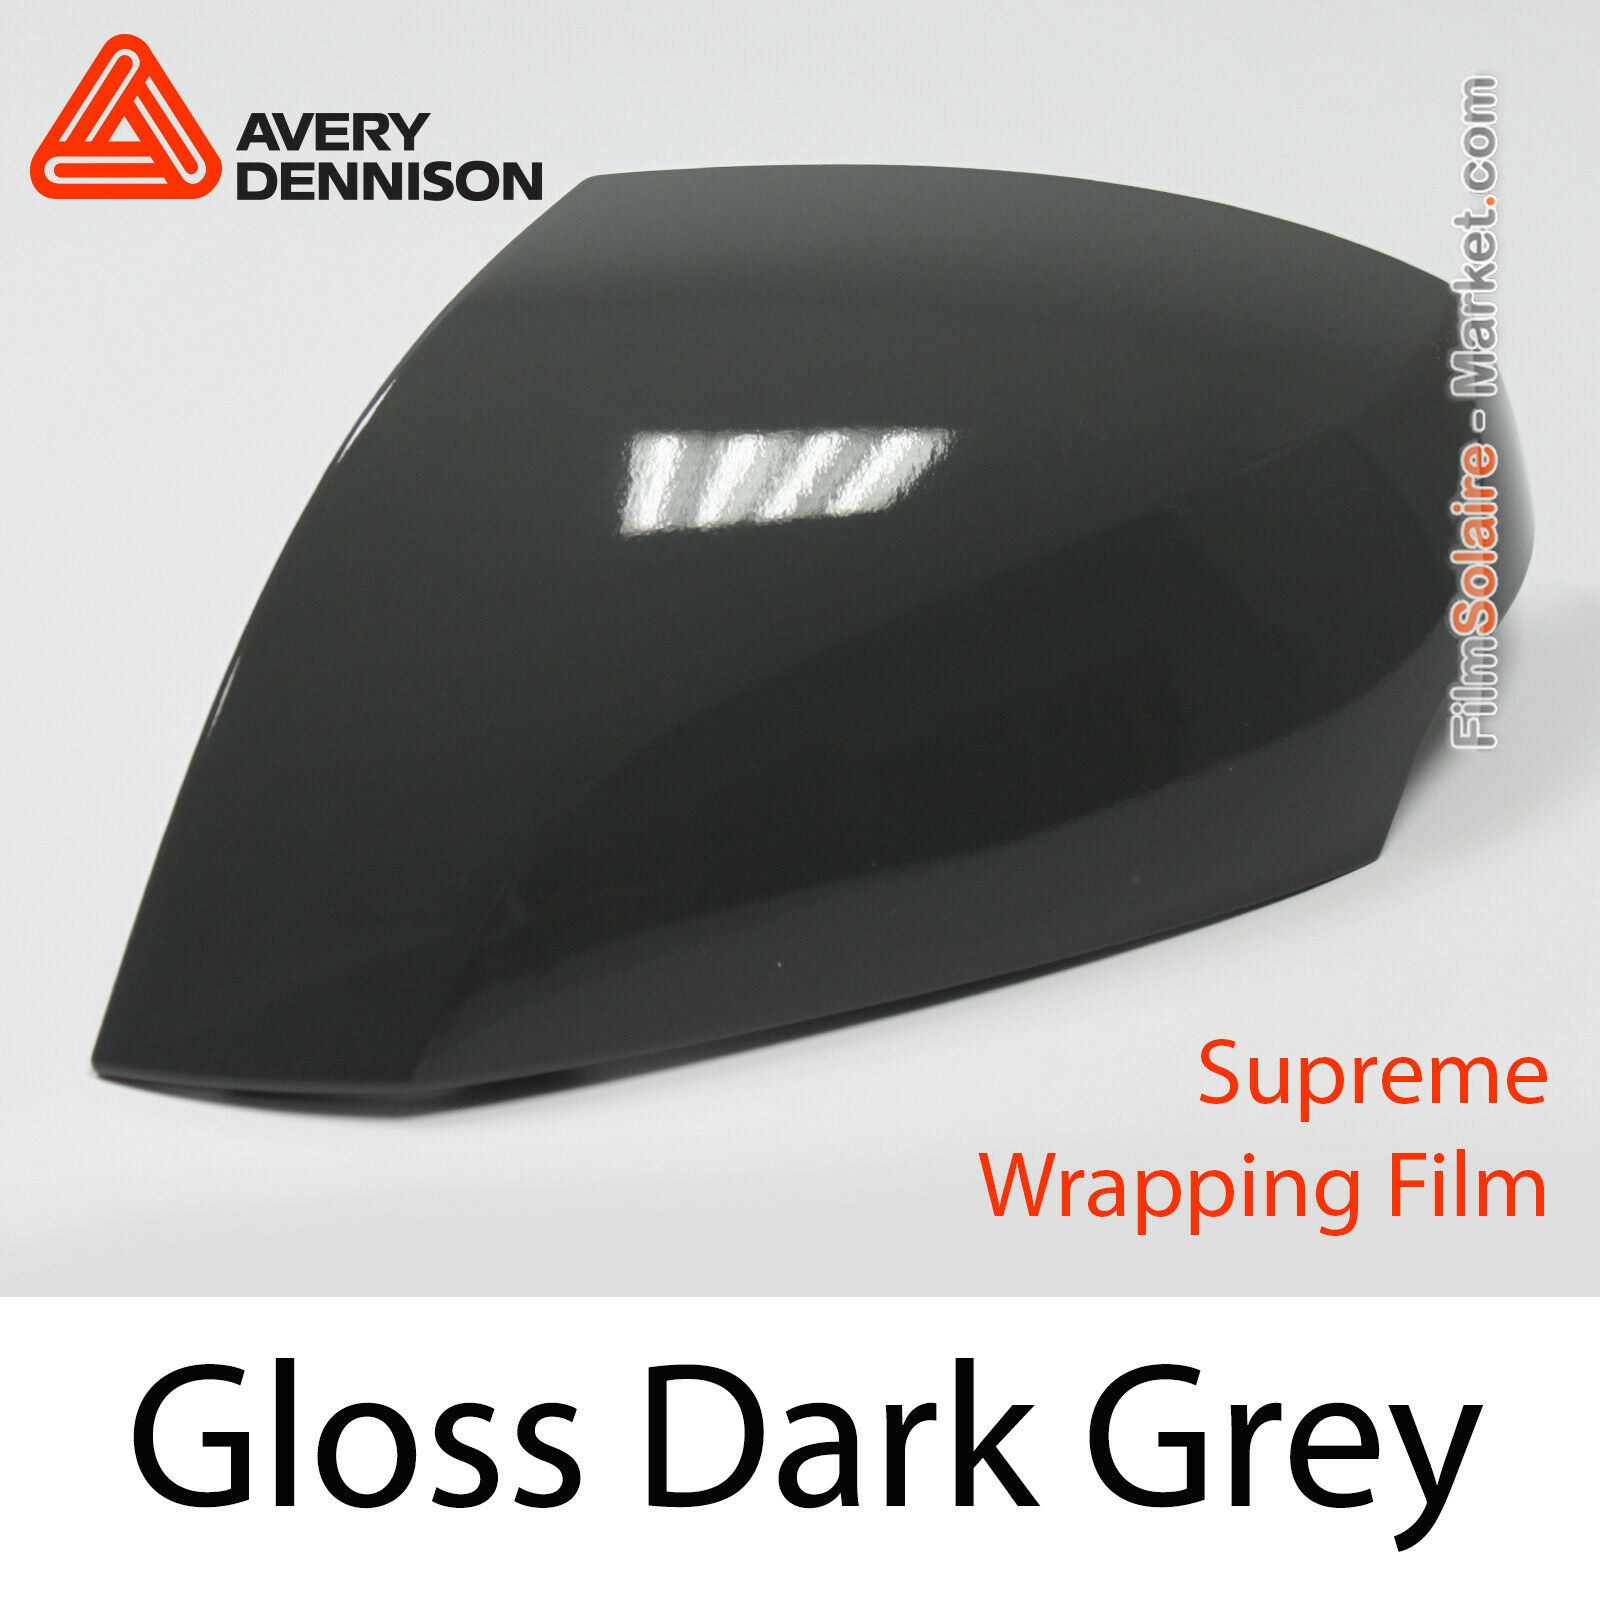 Gloss Dark grau - Avery Dennison Supreme Wrapping Film, Covering CB1560001